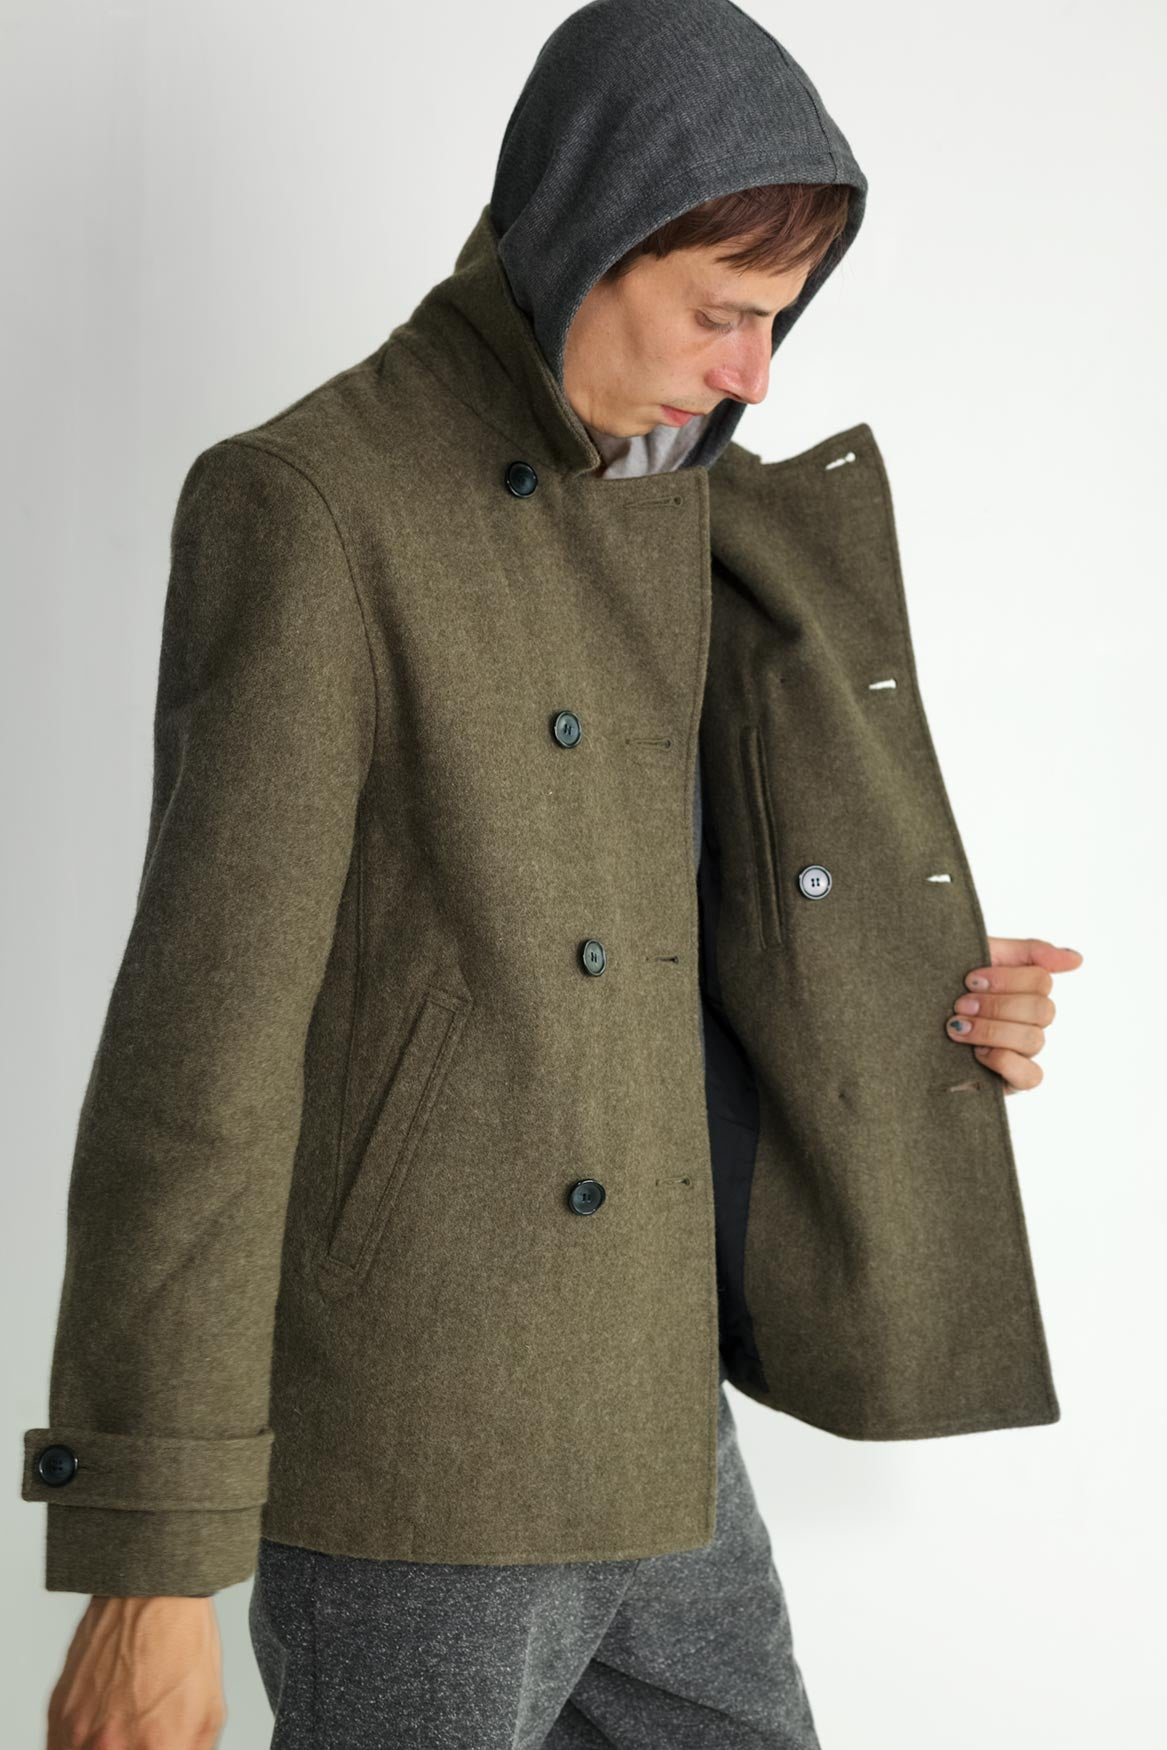 Japanese Loden Pea Coat in Army Green